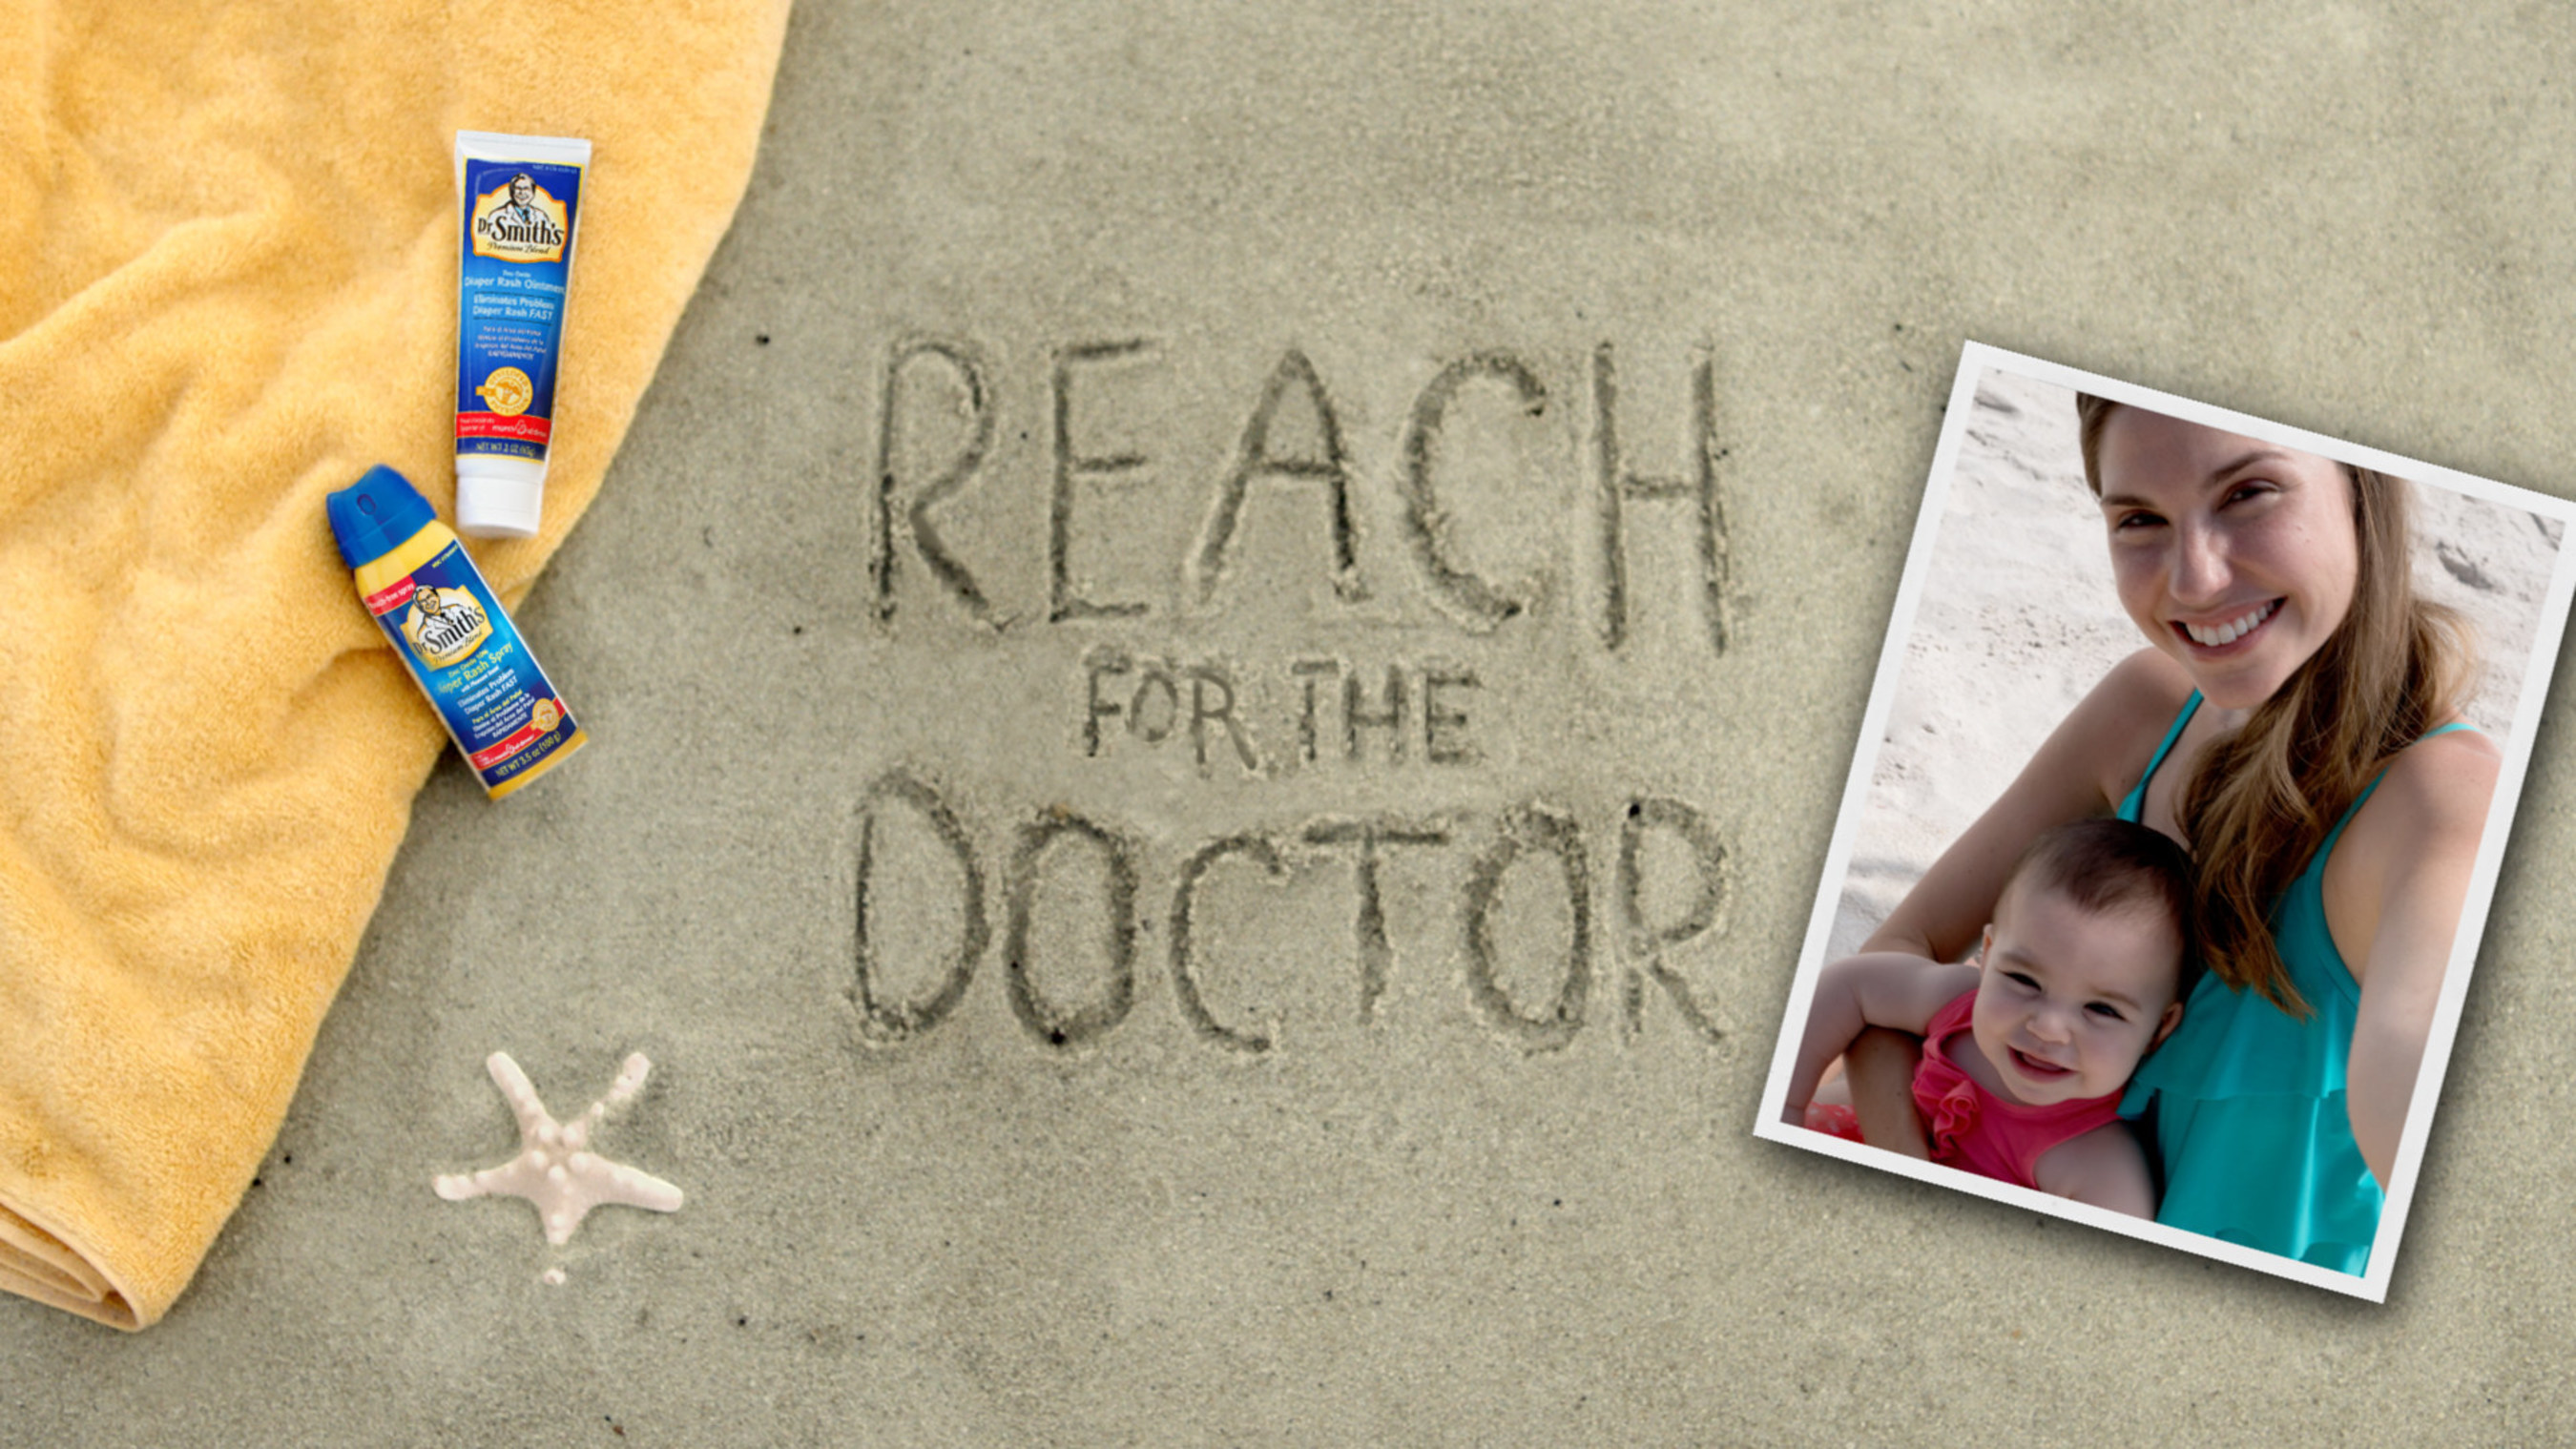 This summer - be prepared for diaper rash season and Reach for the Doctor.